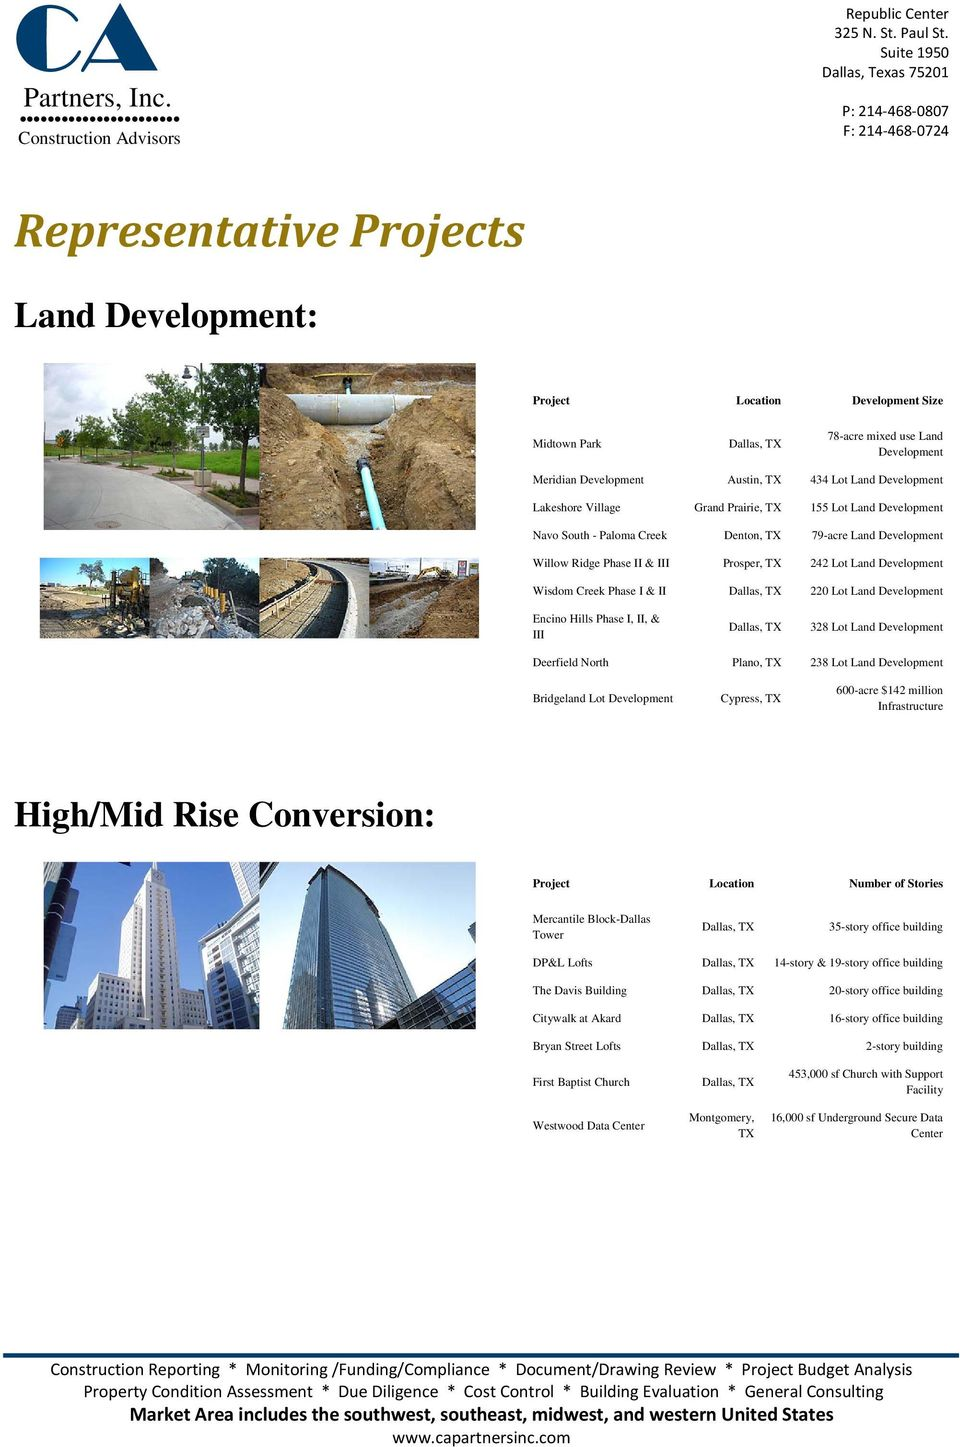 Lot Land Development Encino Hills Phase I, II, & III 328 Lot Land Development Deerfield North Plano, TX 238 Lot Land Development Bridgeland Lot Development Cypress, TX 600-acre $142 million